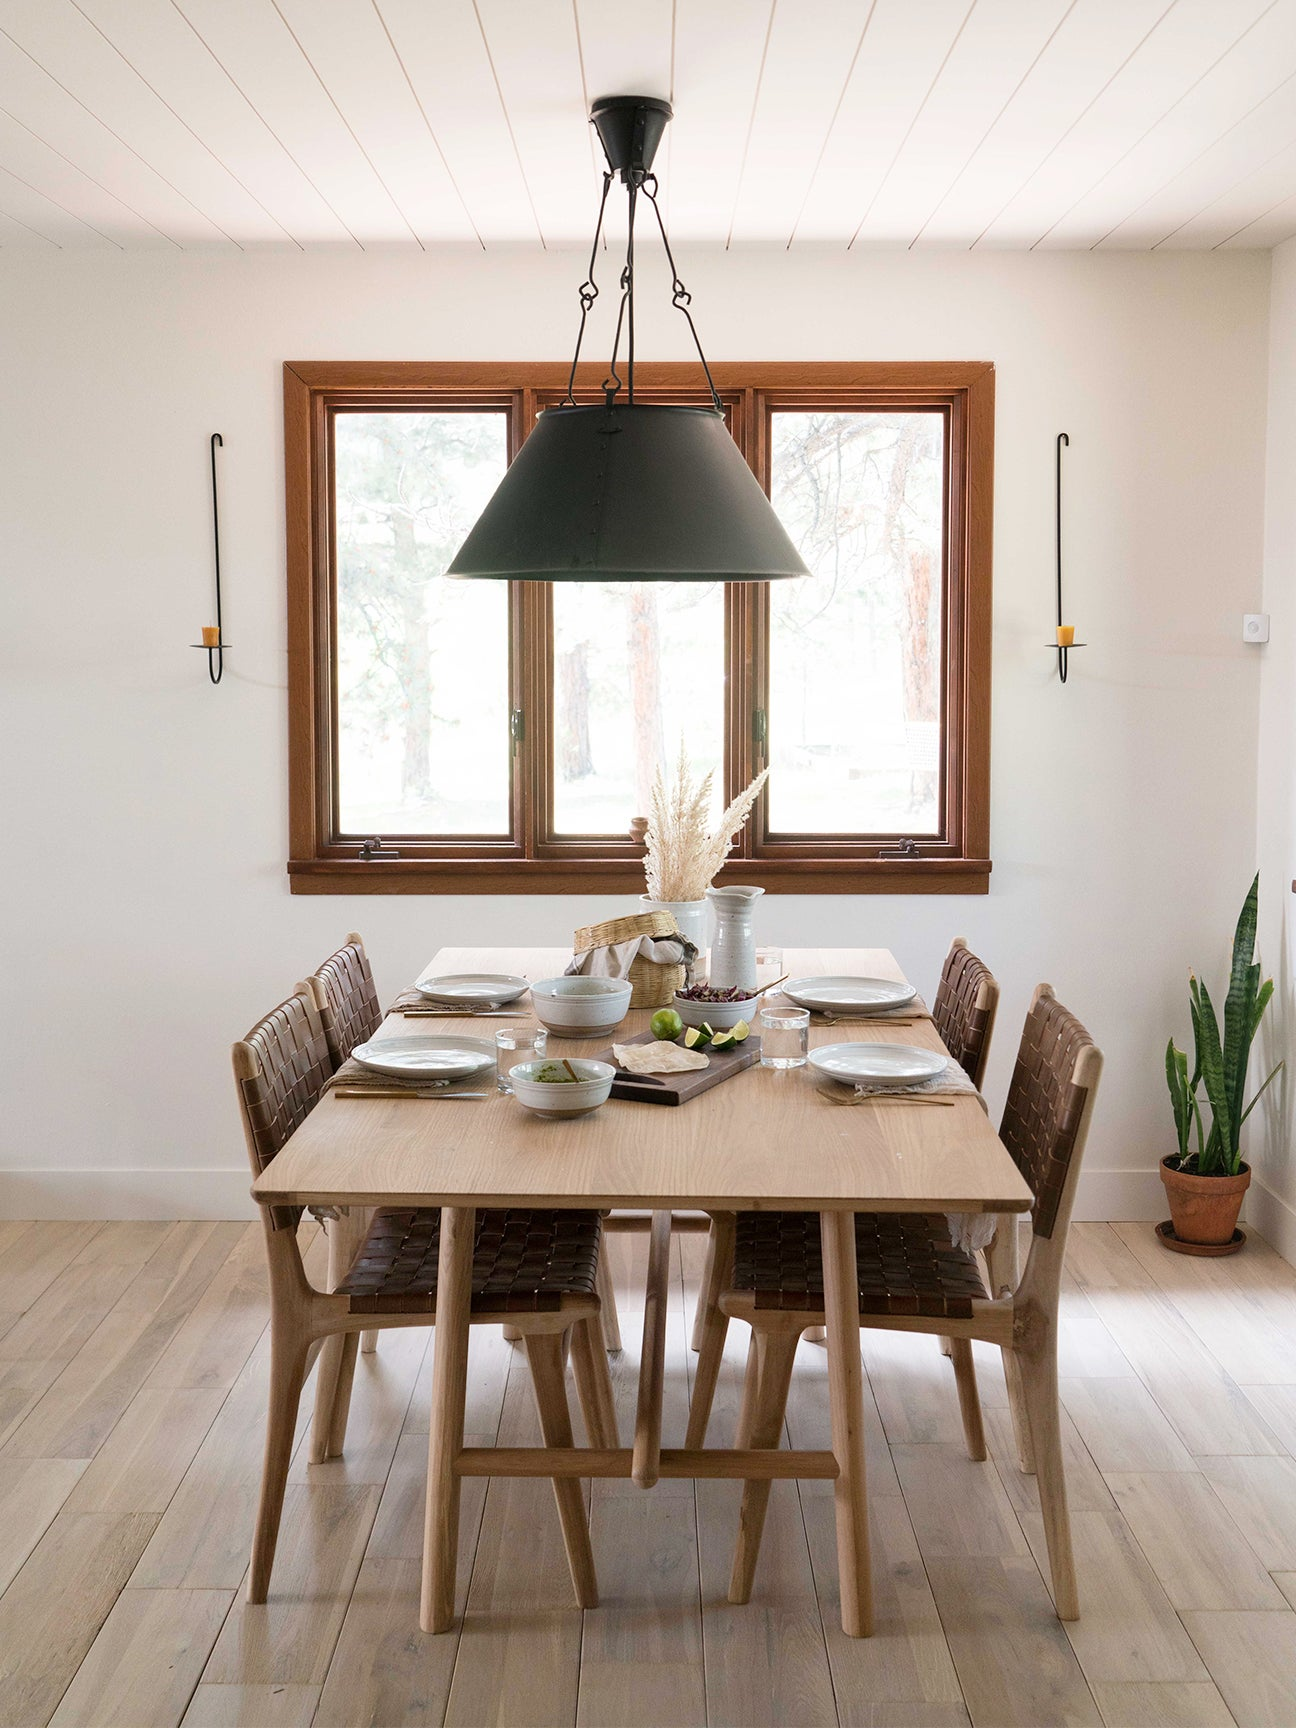 neutral dining room with farmhosue table and black pendant